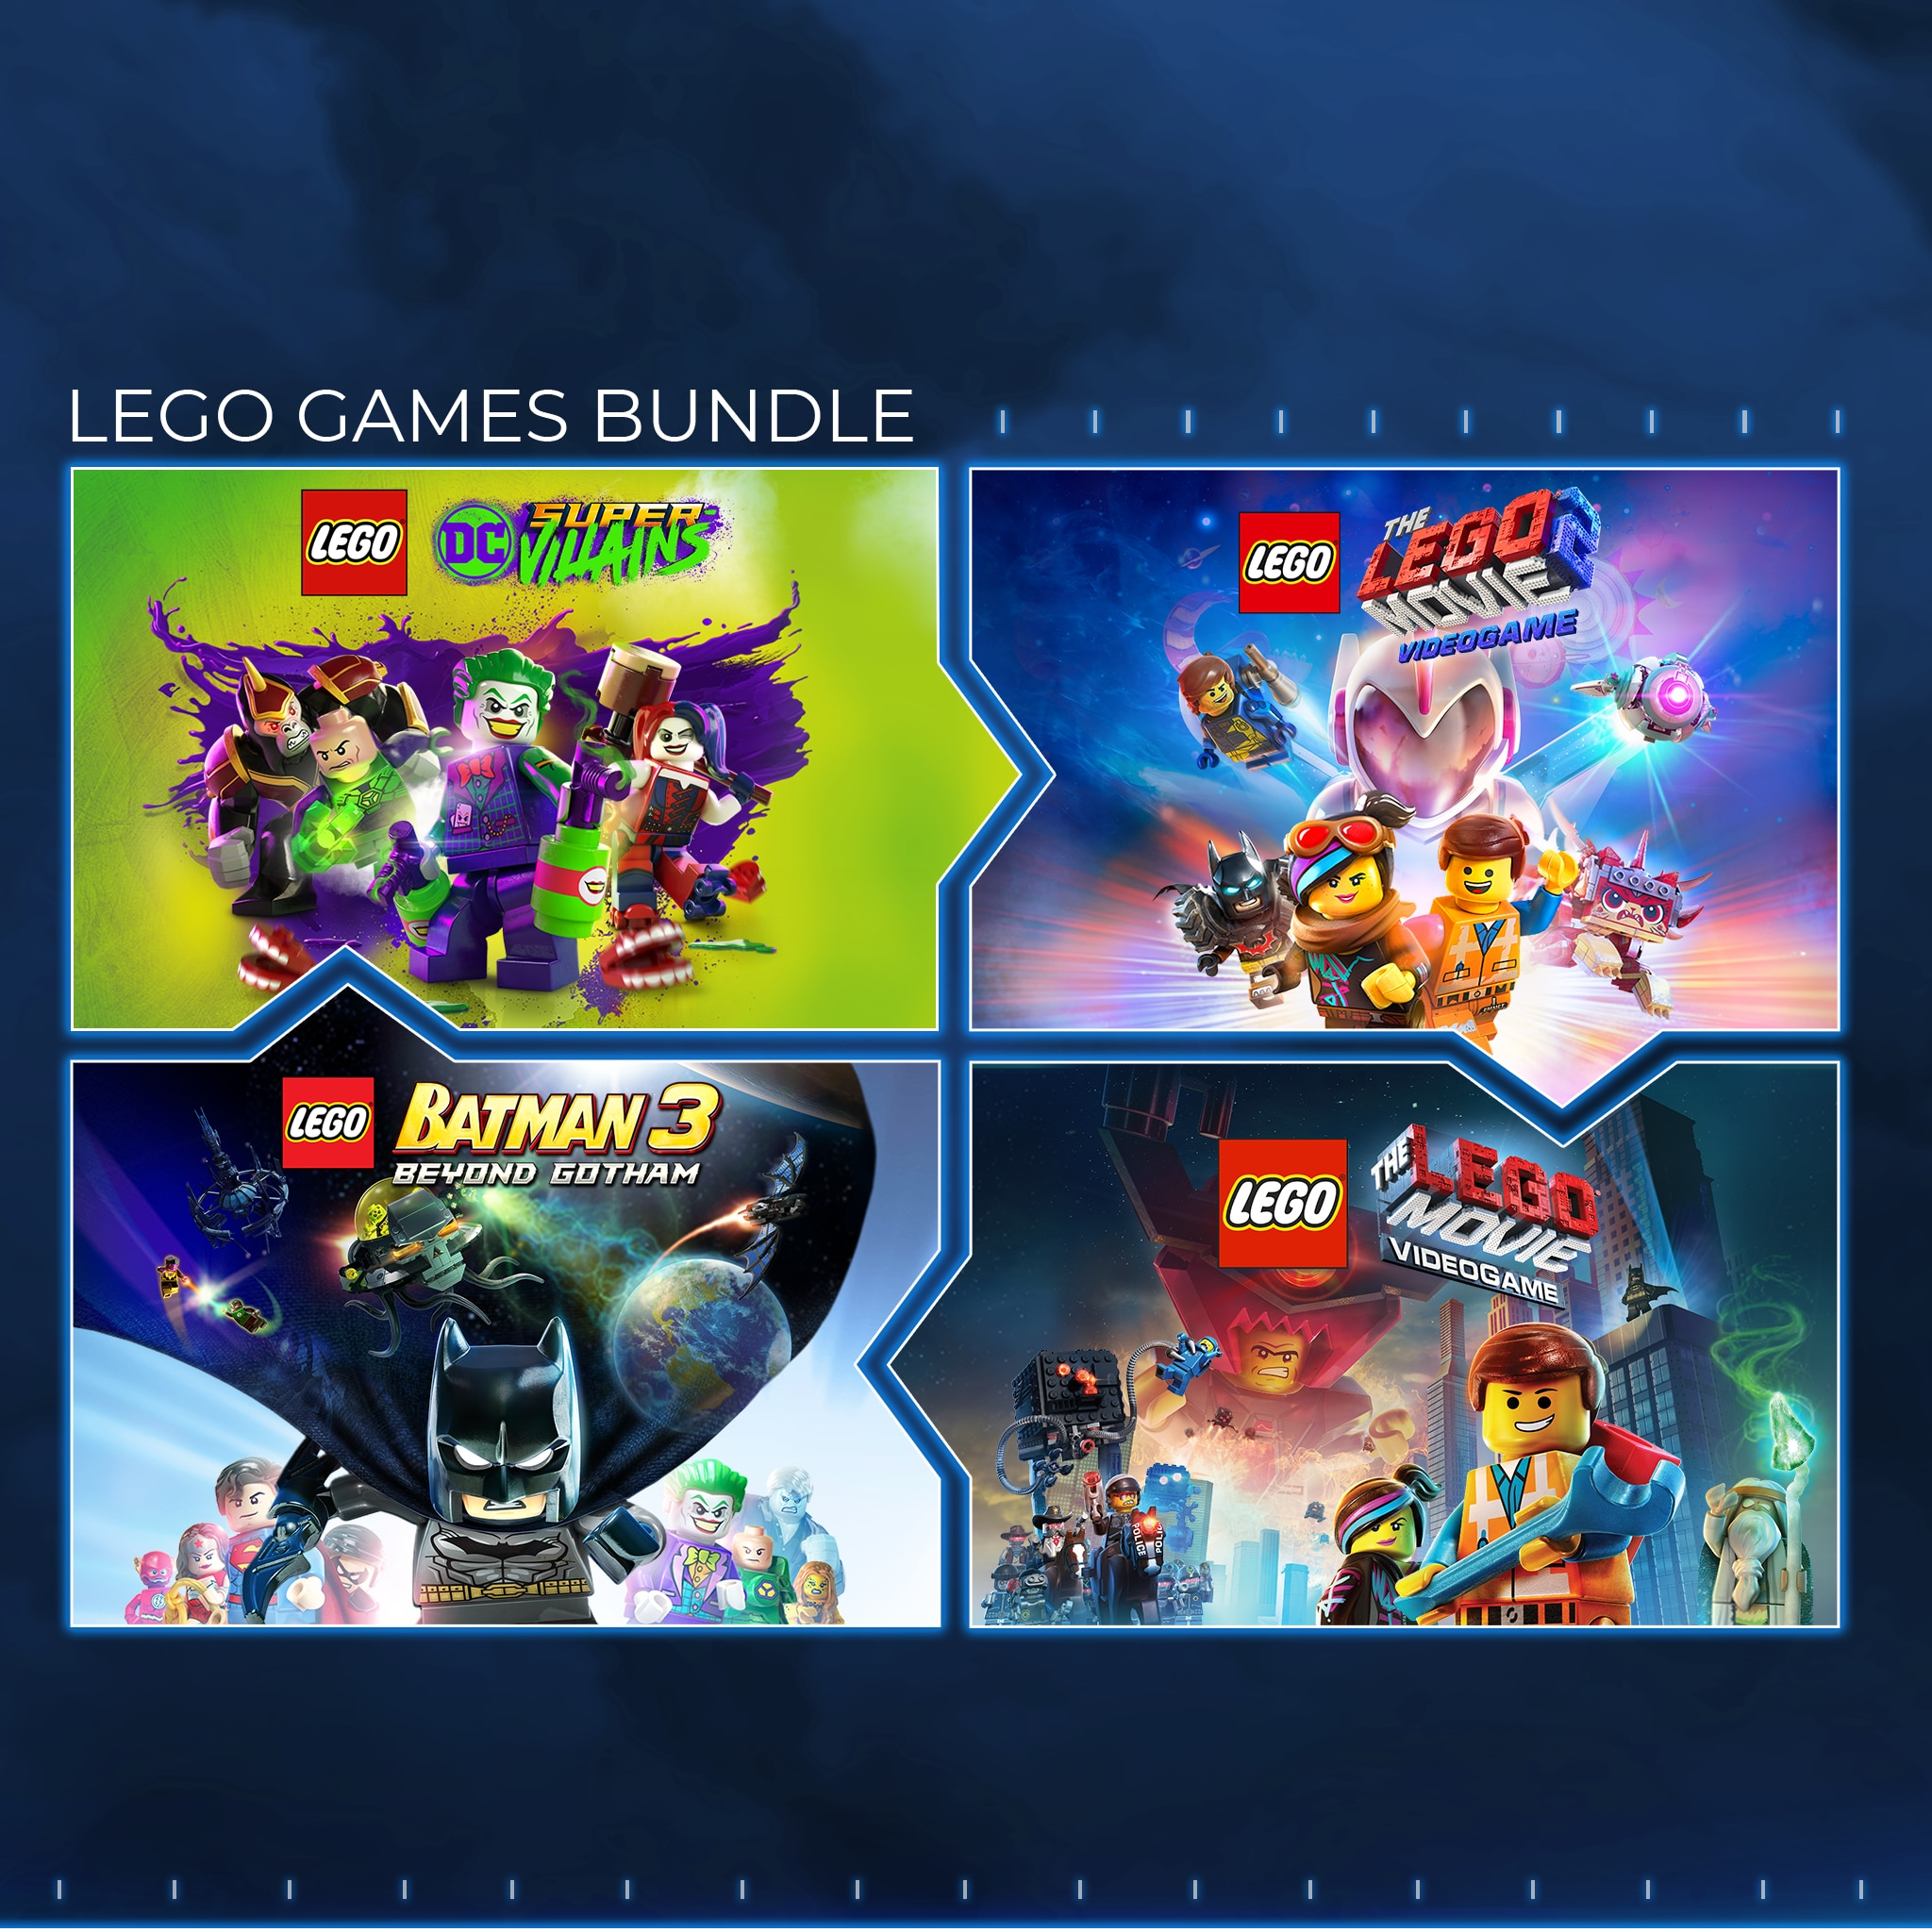 The LEGO® Games Bundle